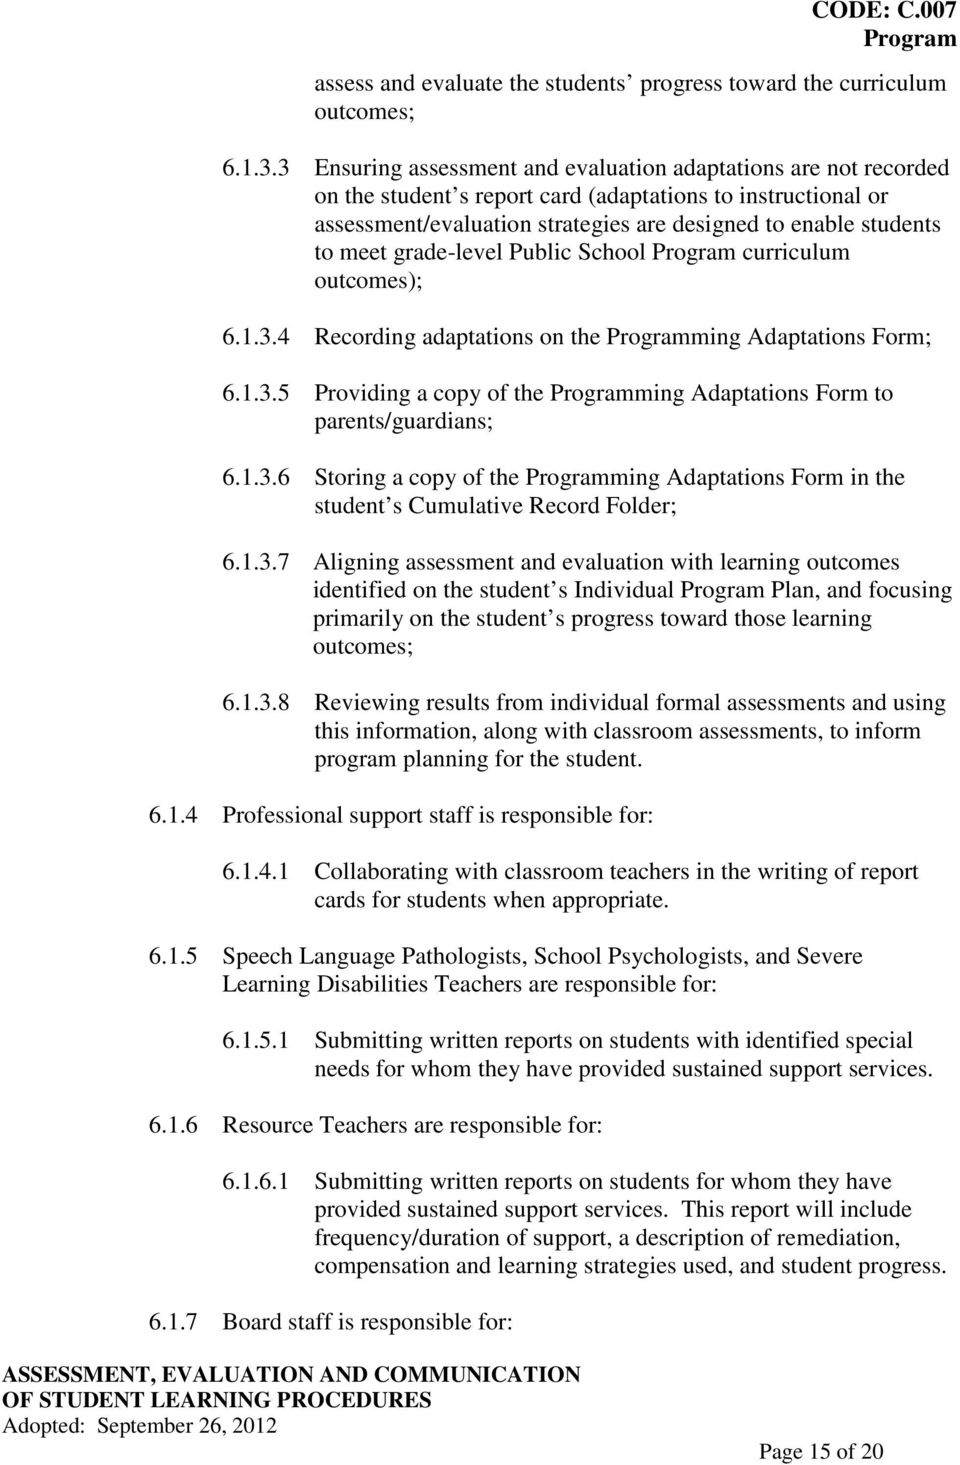 meet grade-level Public School curriculum outcomes); 6.1.3.4 Recording adaptations on the ming Adaptations Form; 6.1.3.5 Providing a copy of the ming Adaptations Form to parents/guardians; 6.1.3.6 Storing a copy of the ming Adaptations Form in the student s Cumulative Record Folder; 6.